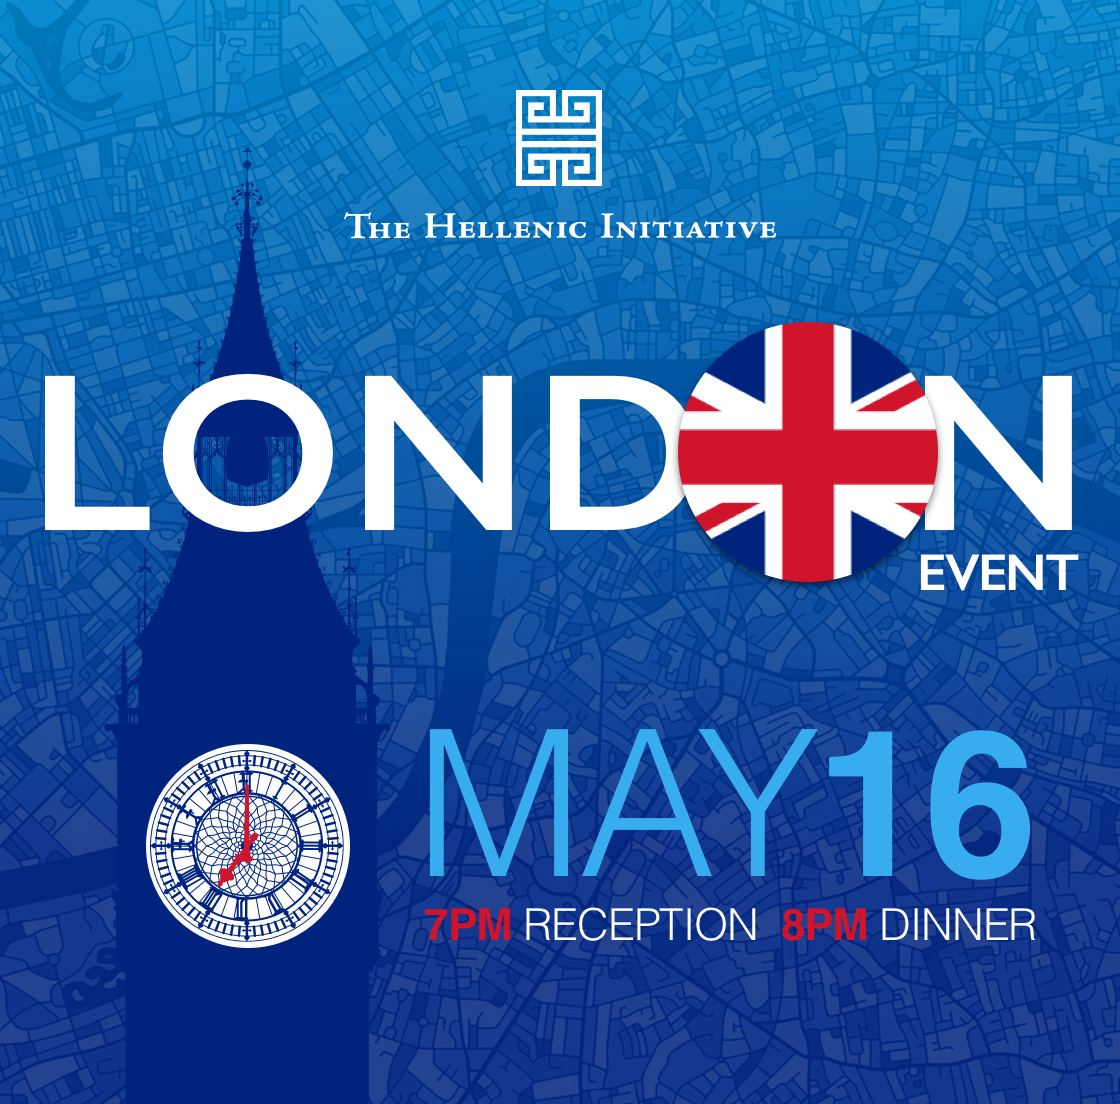 THI Third Annual London Event